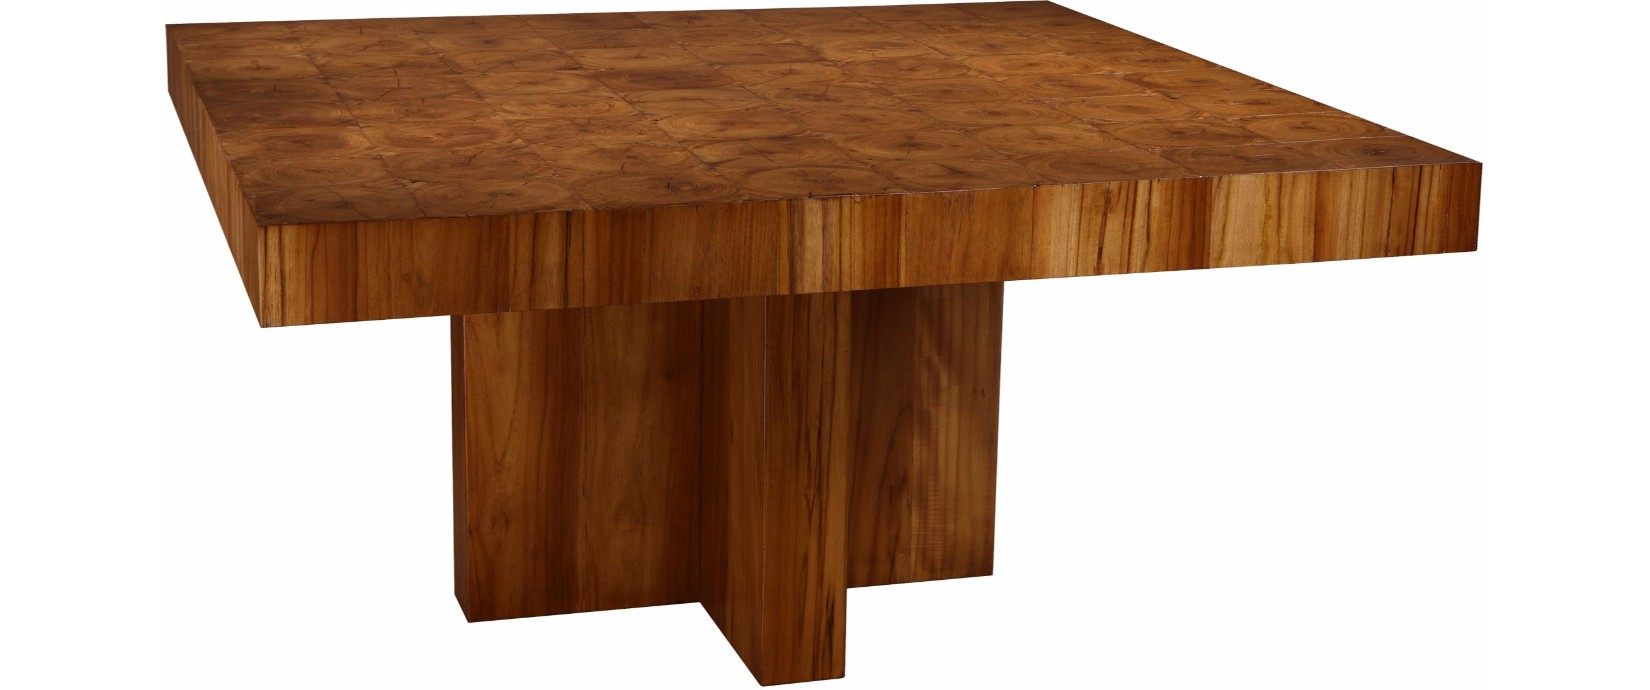 Outstanding Square Dining Table Photos Decors Dievoon